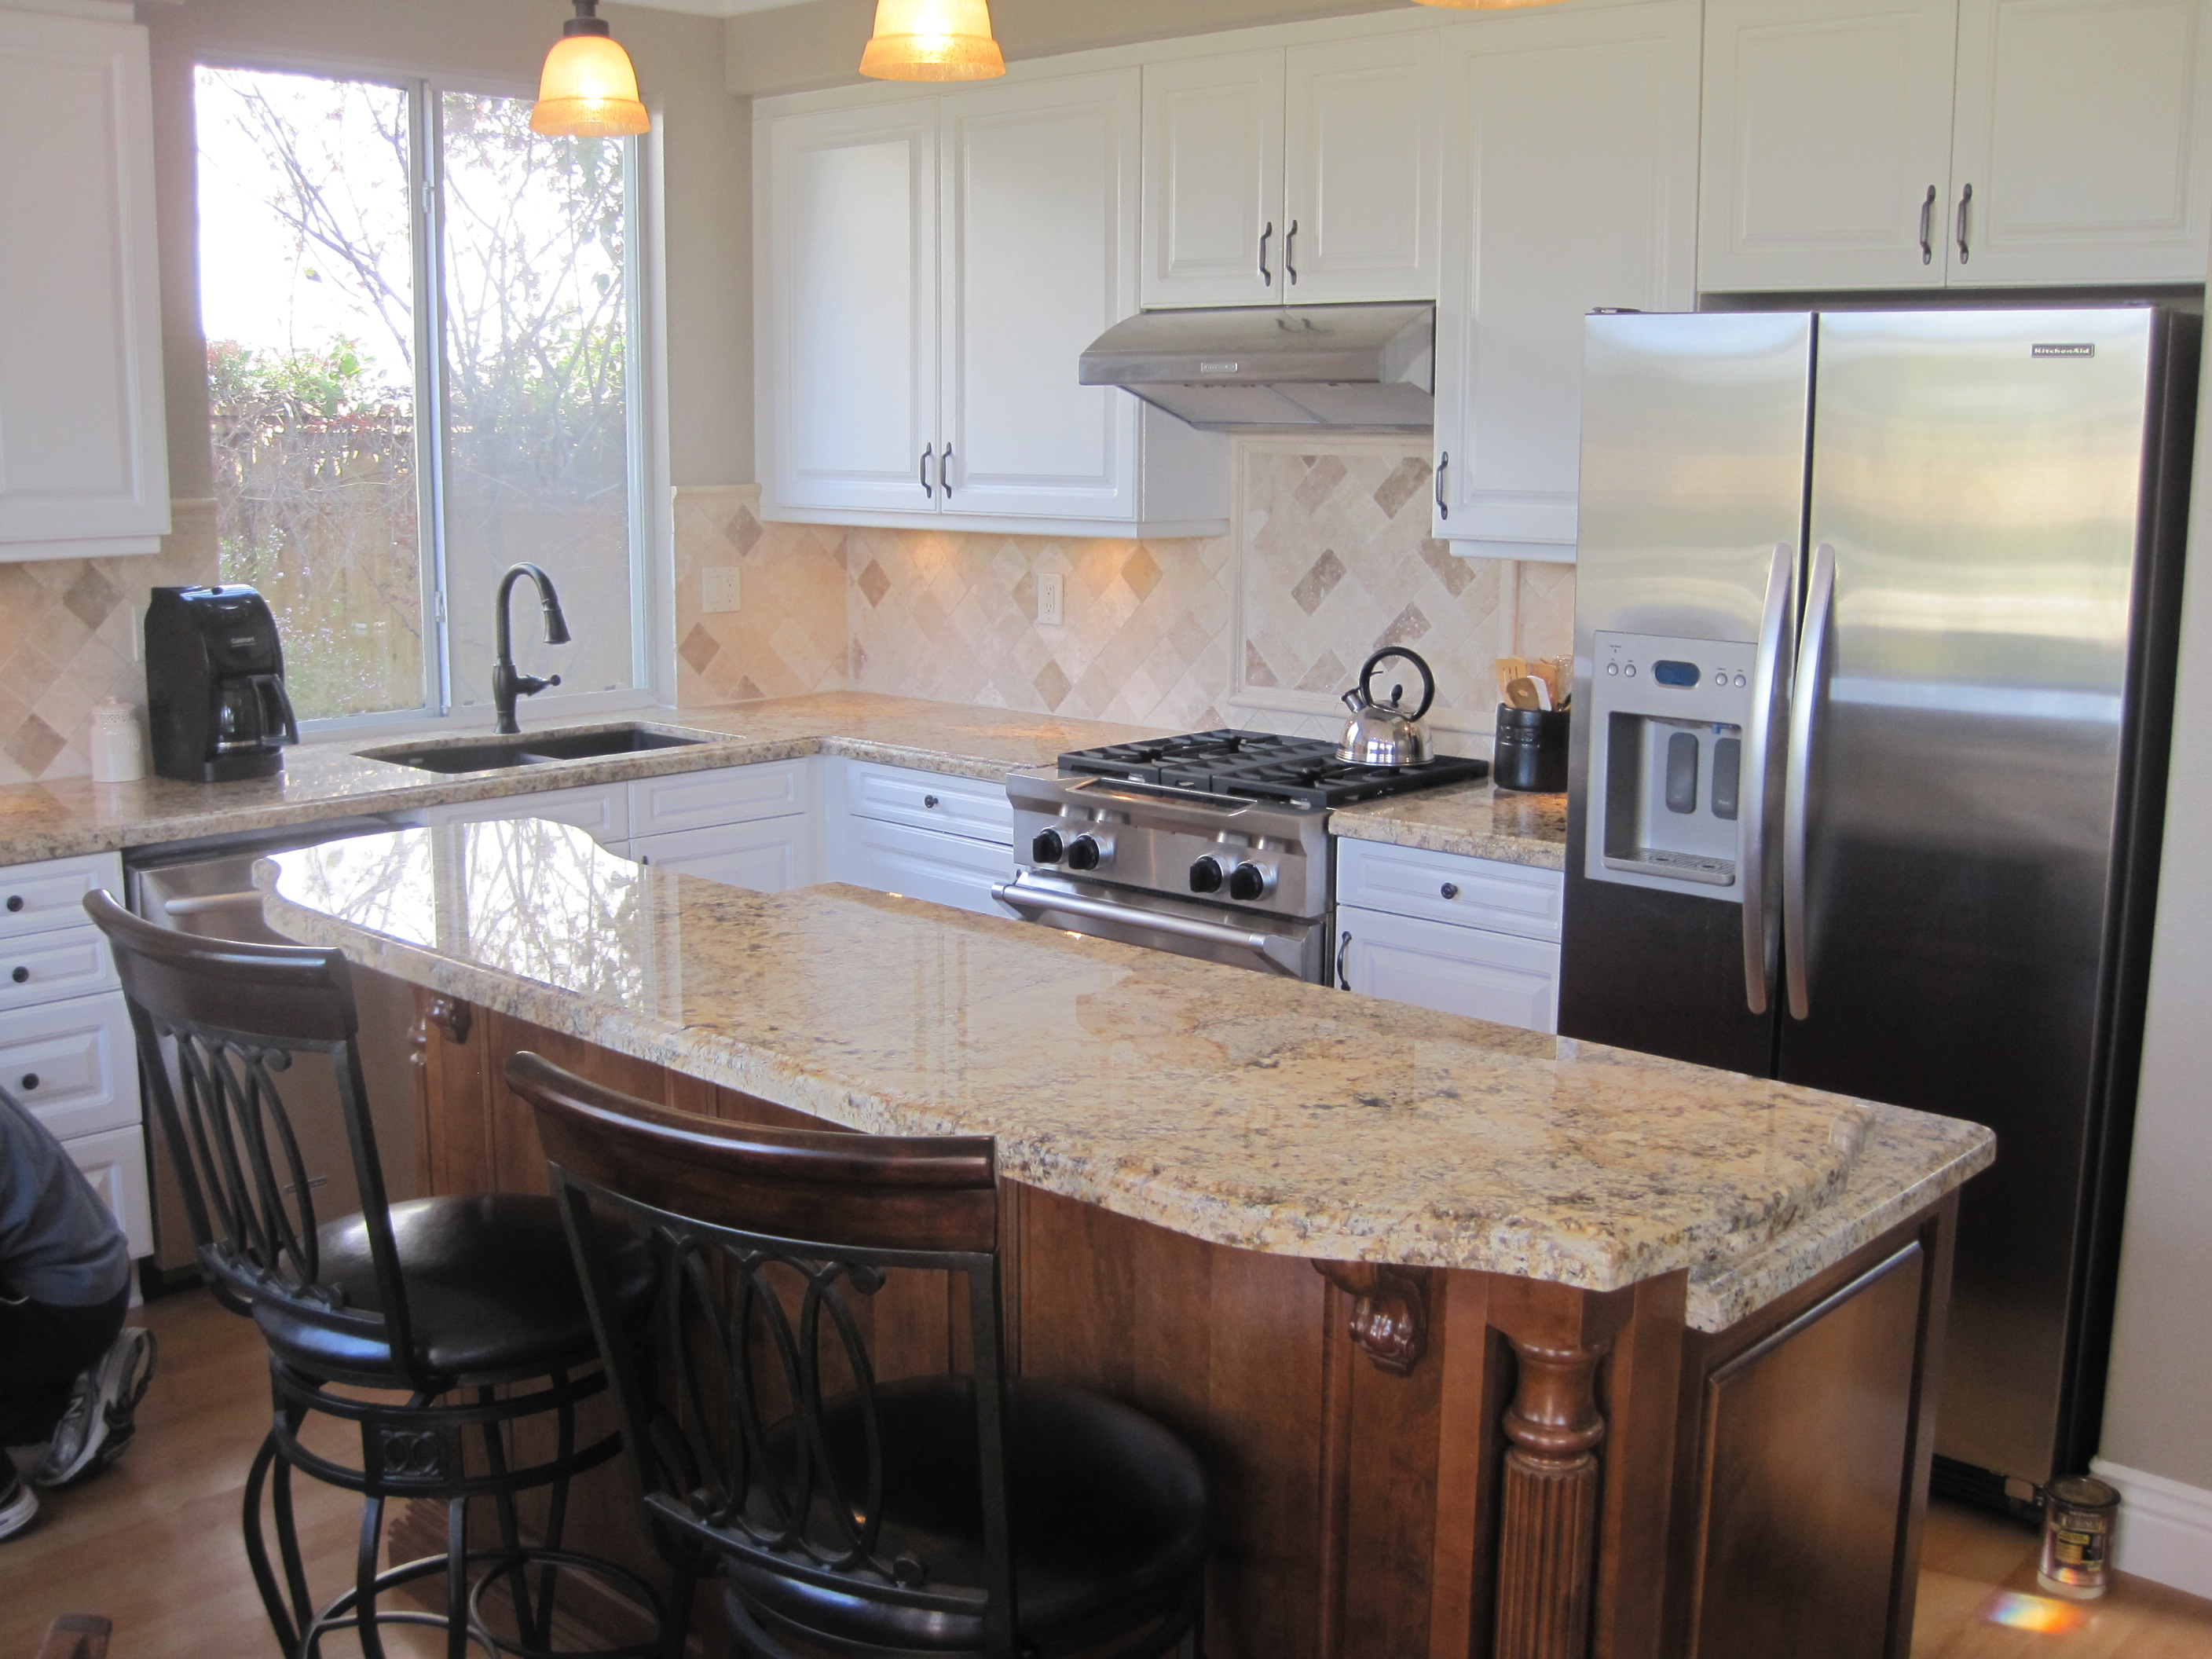 ... Bathroom Design · Cabinet Refinishing Westlake Village · Kitchen Web Pics 5 Jpg ...